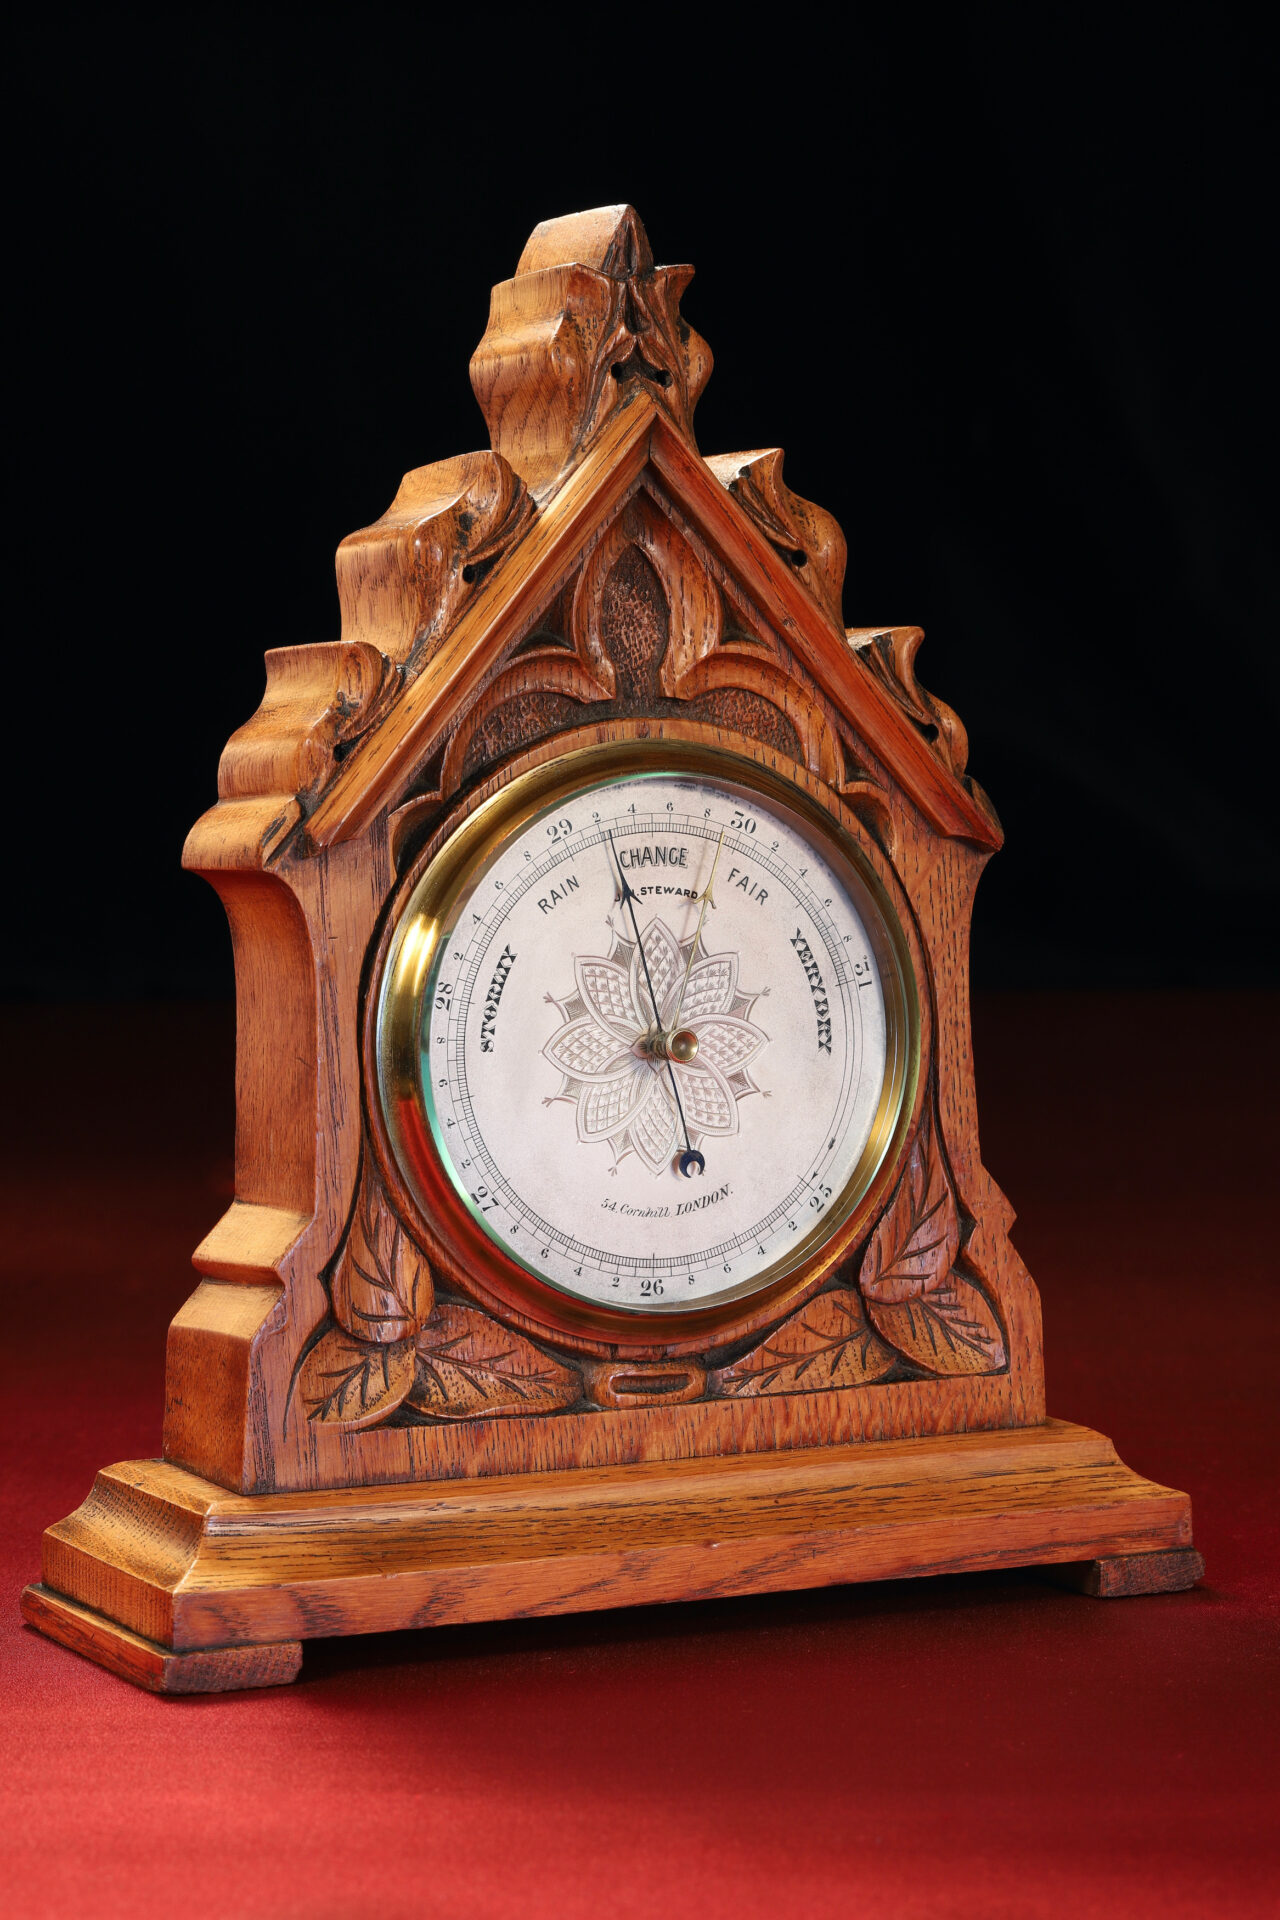 Image of JH Steward Gothic Mantle Barometer c1880 taken from lefthand side